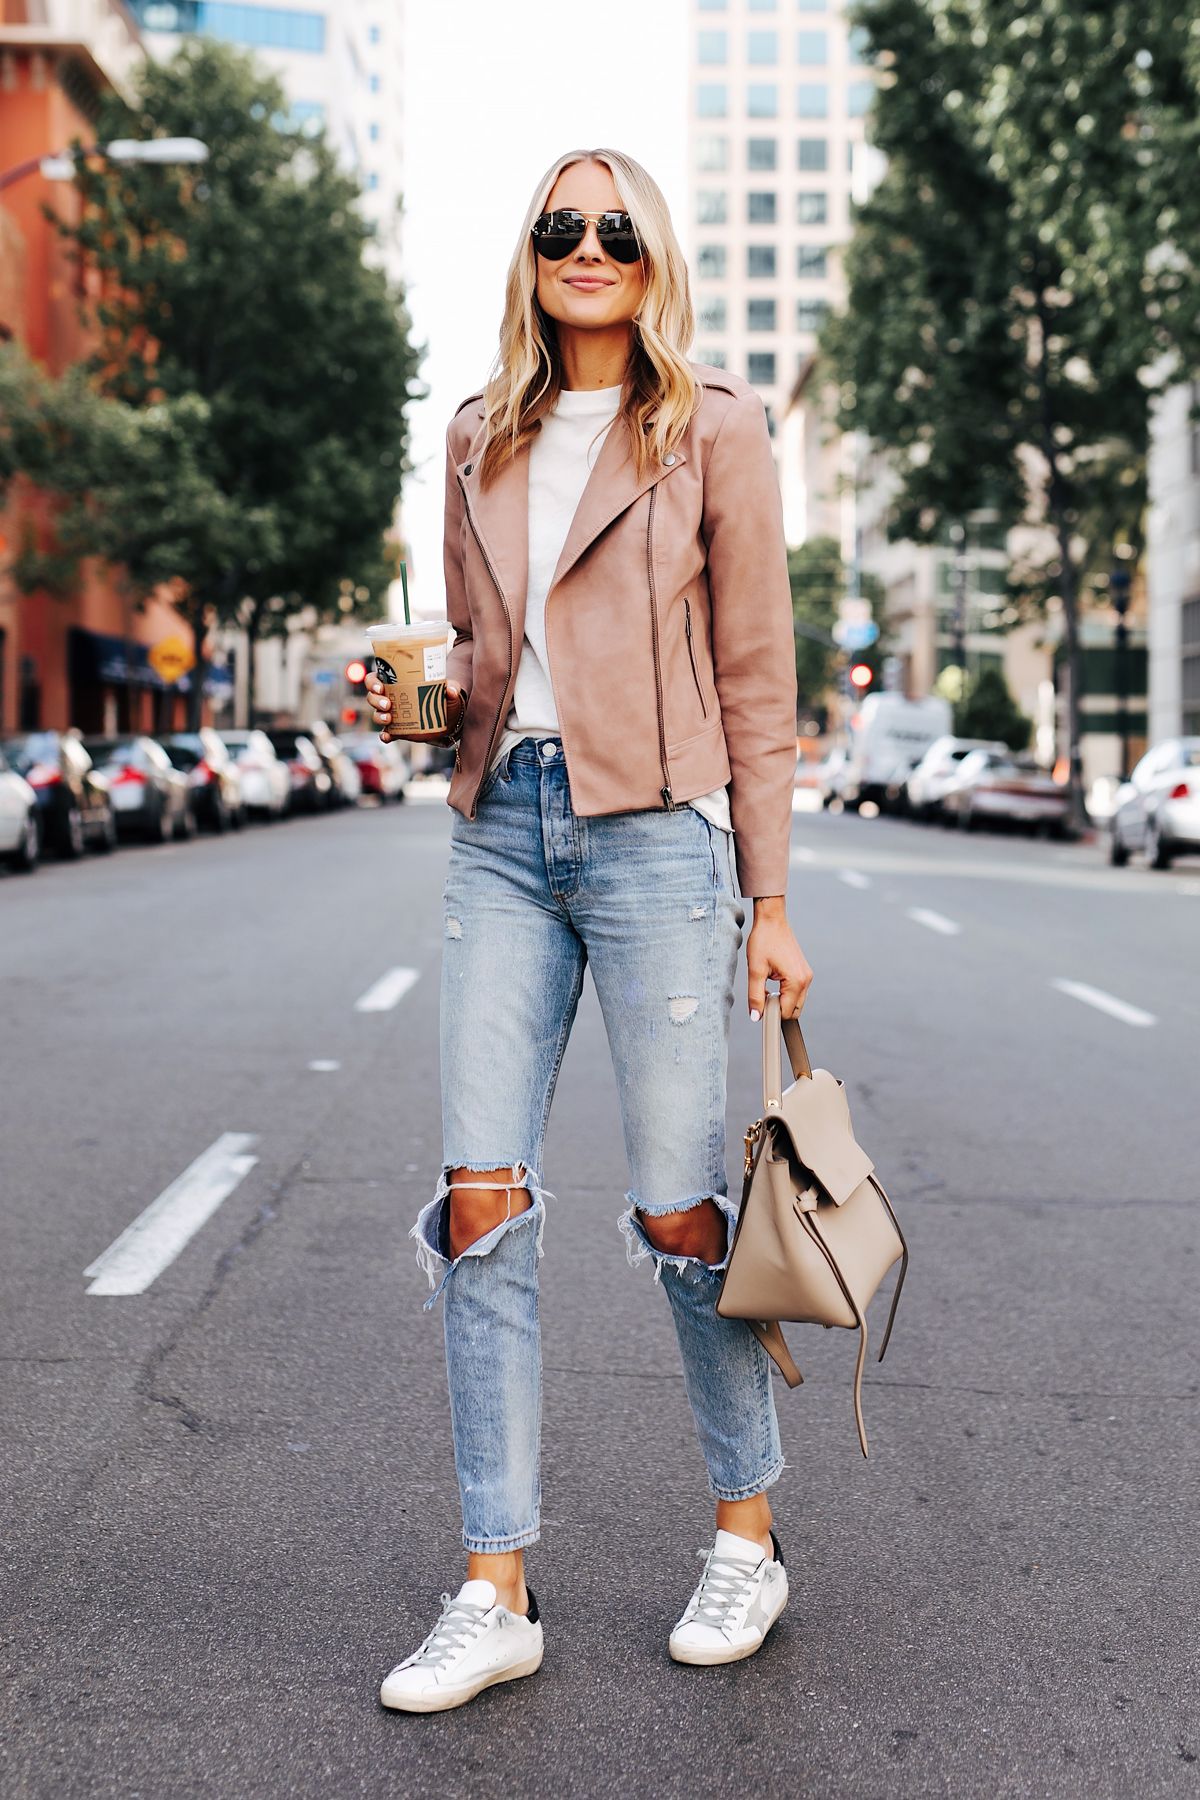 Blonde Woman Wearing Blush Faux Leather Jacket White Tshirt Boyish The Billie Jean Easy Rider Golden Goose Sneakers Celine Mini Belt Bag Fashion Jackson San Diego Fashion Blogger Street Style